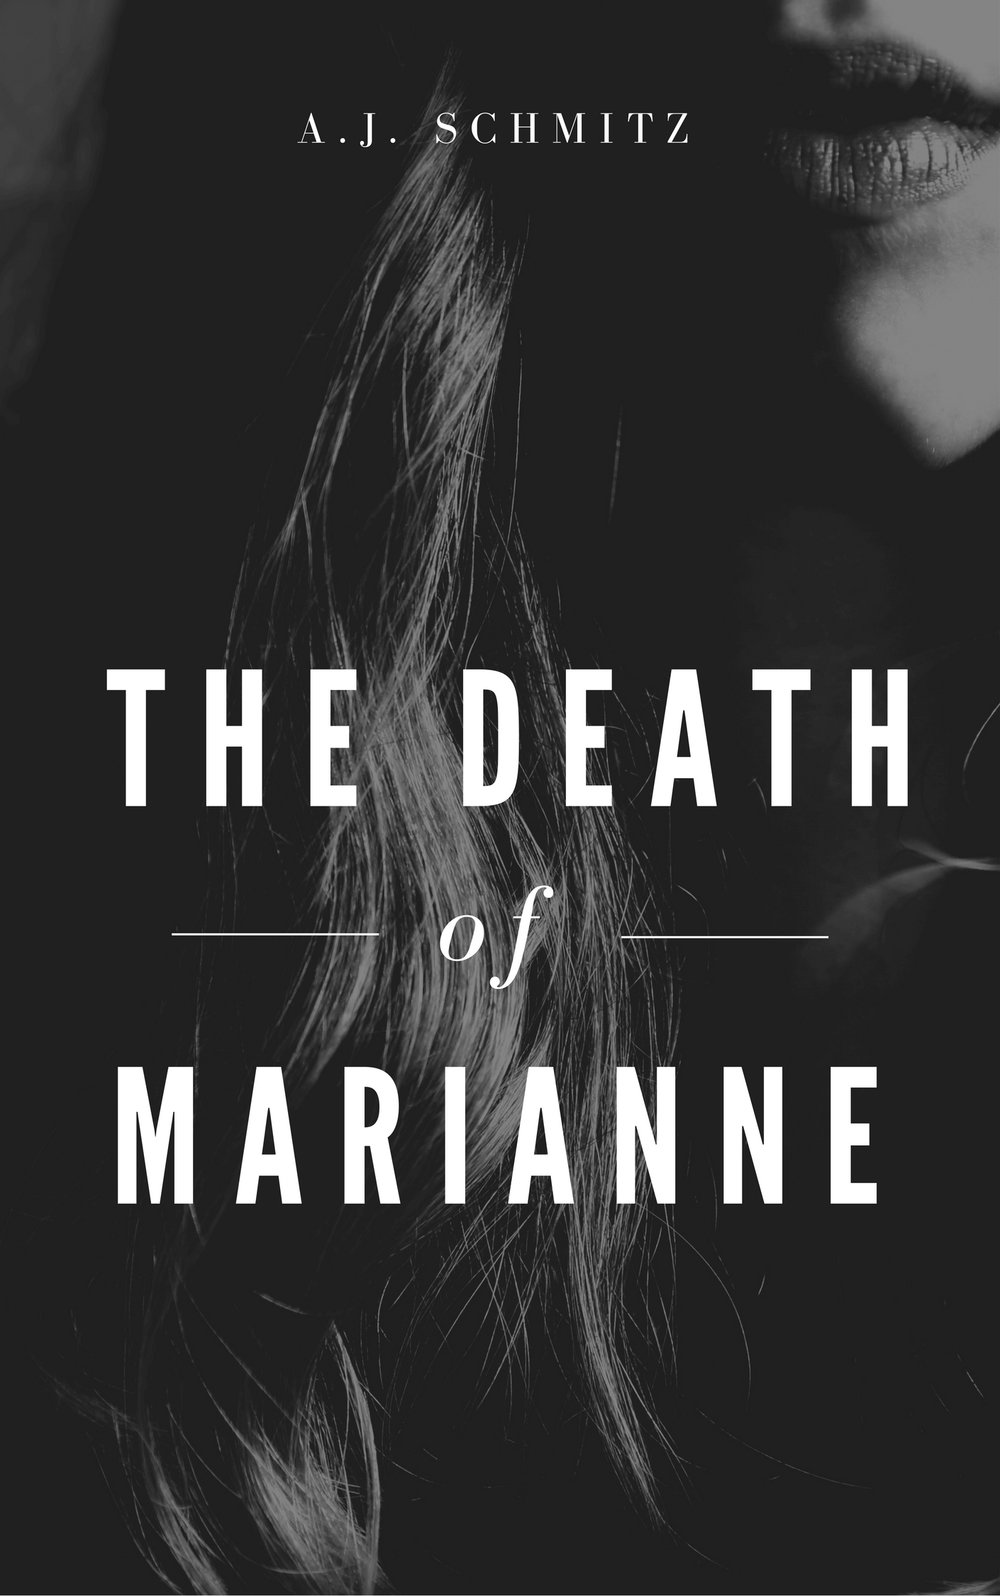 The Death Of Marianne - Kindle.jpg